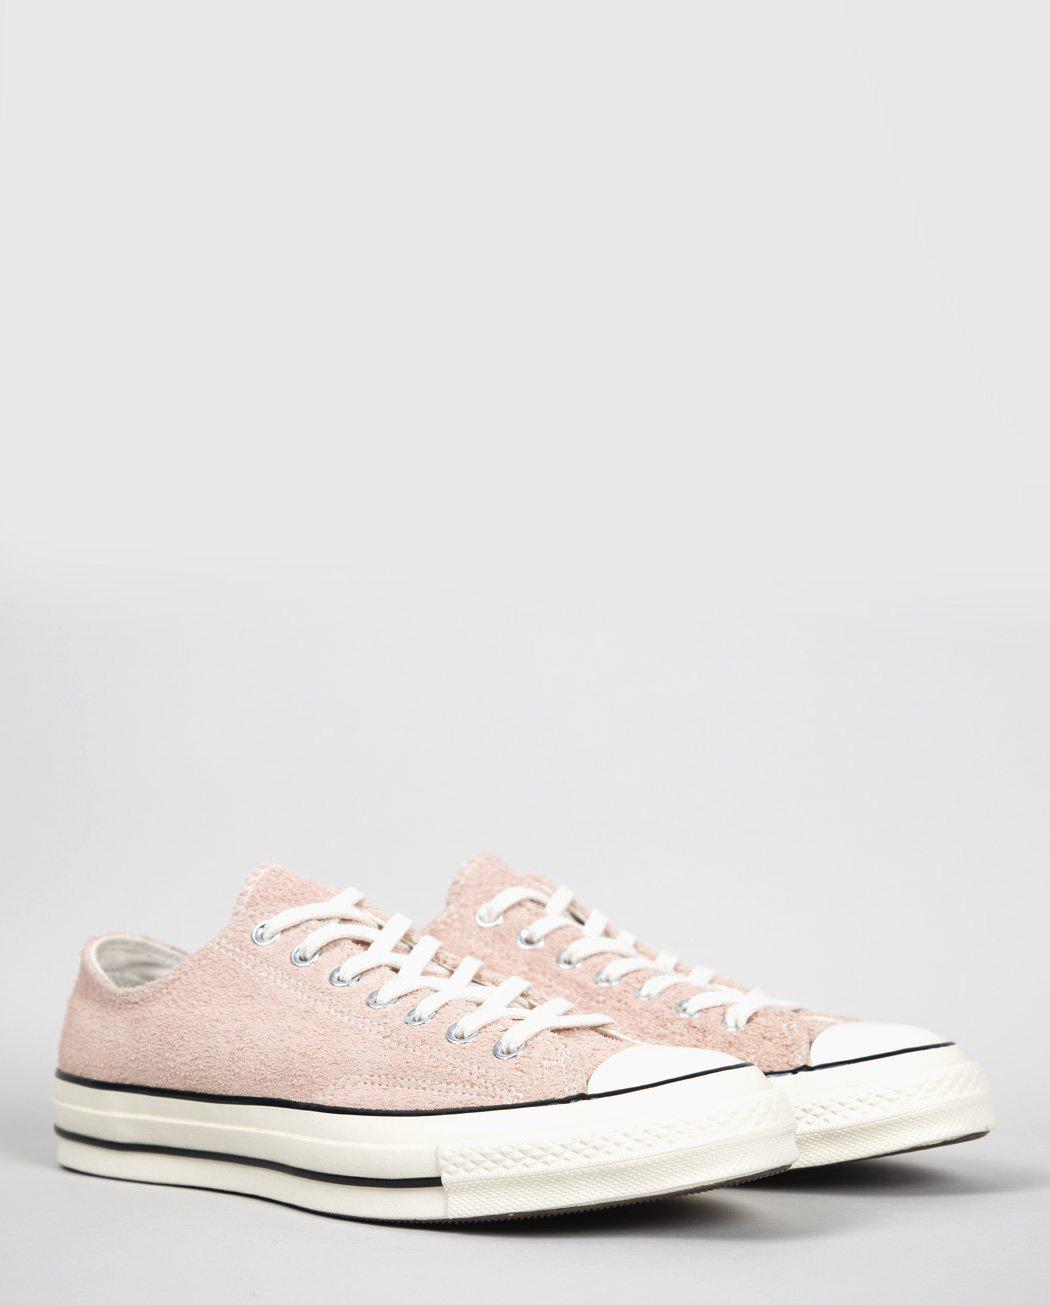 838627ad7a1b Lyst - Converse 70 s Chuck Taylor Low (canvas) in Pink for Men